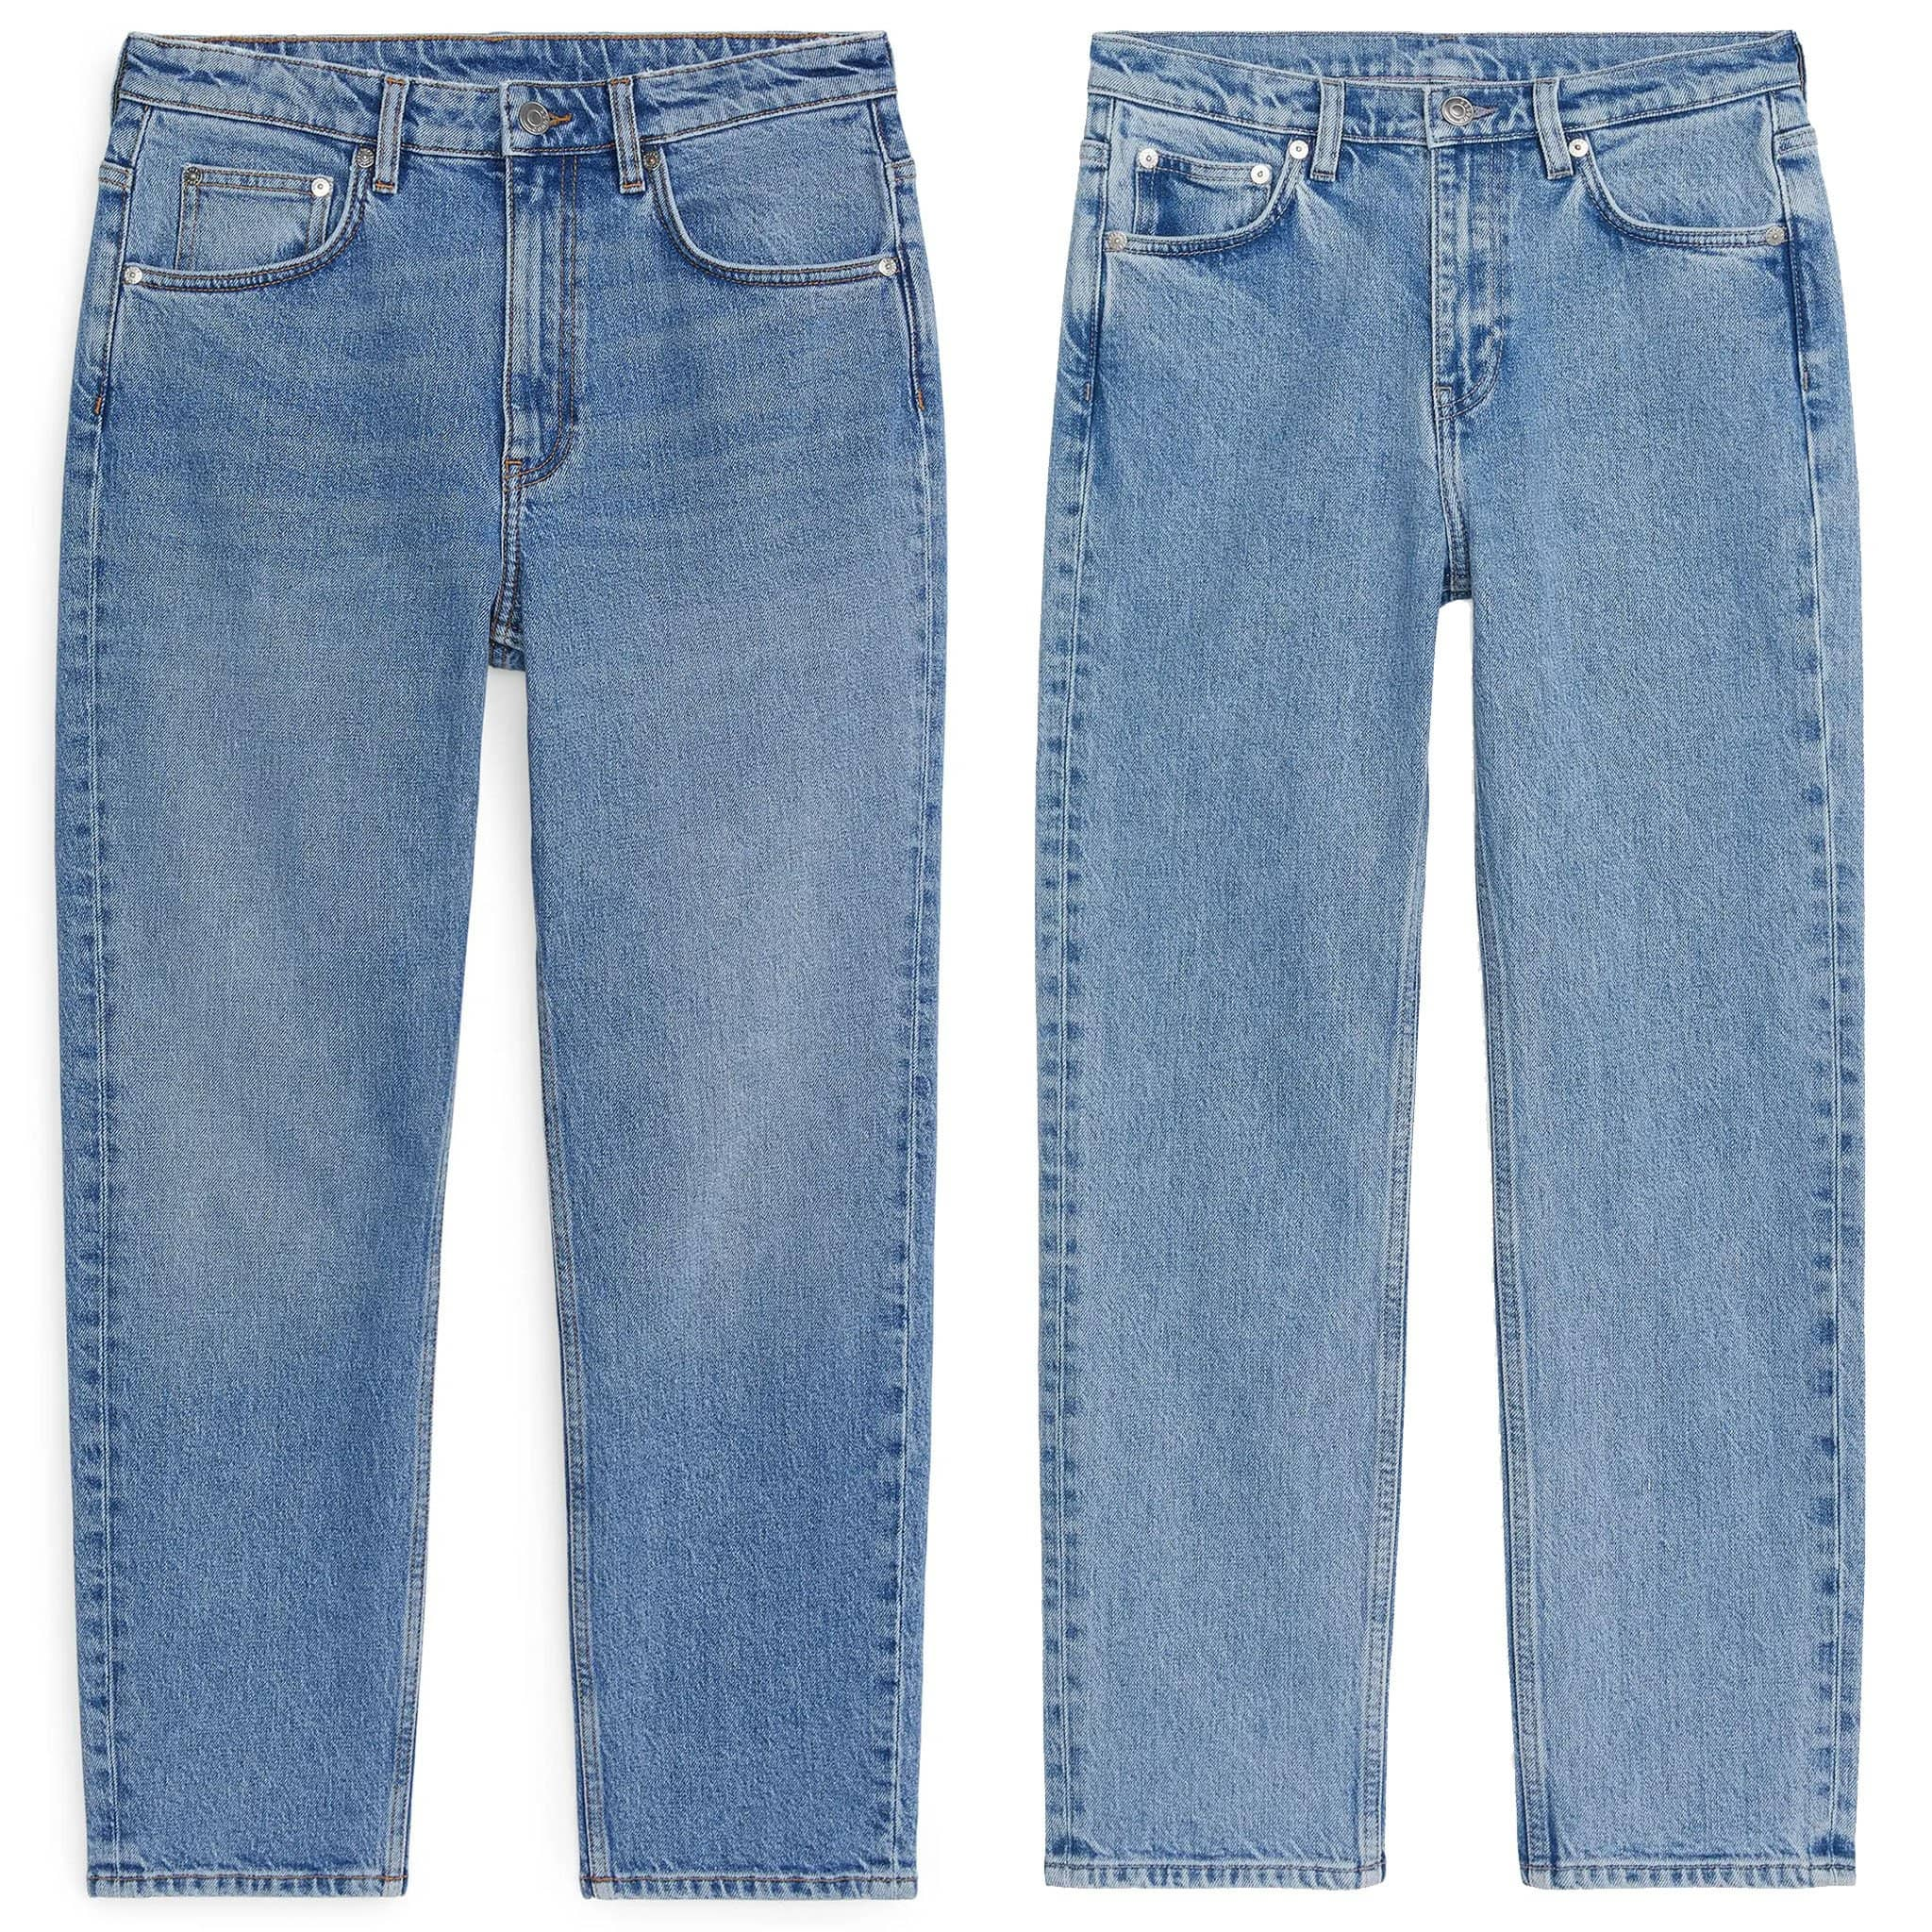 These are a classic pair of five-pocket mid-rise straight-leg jeans made from organic cotton